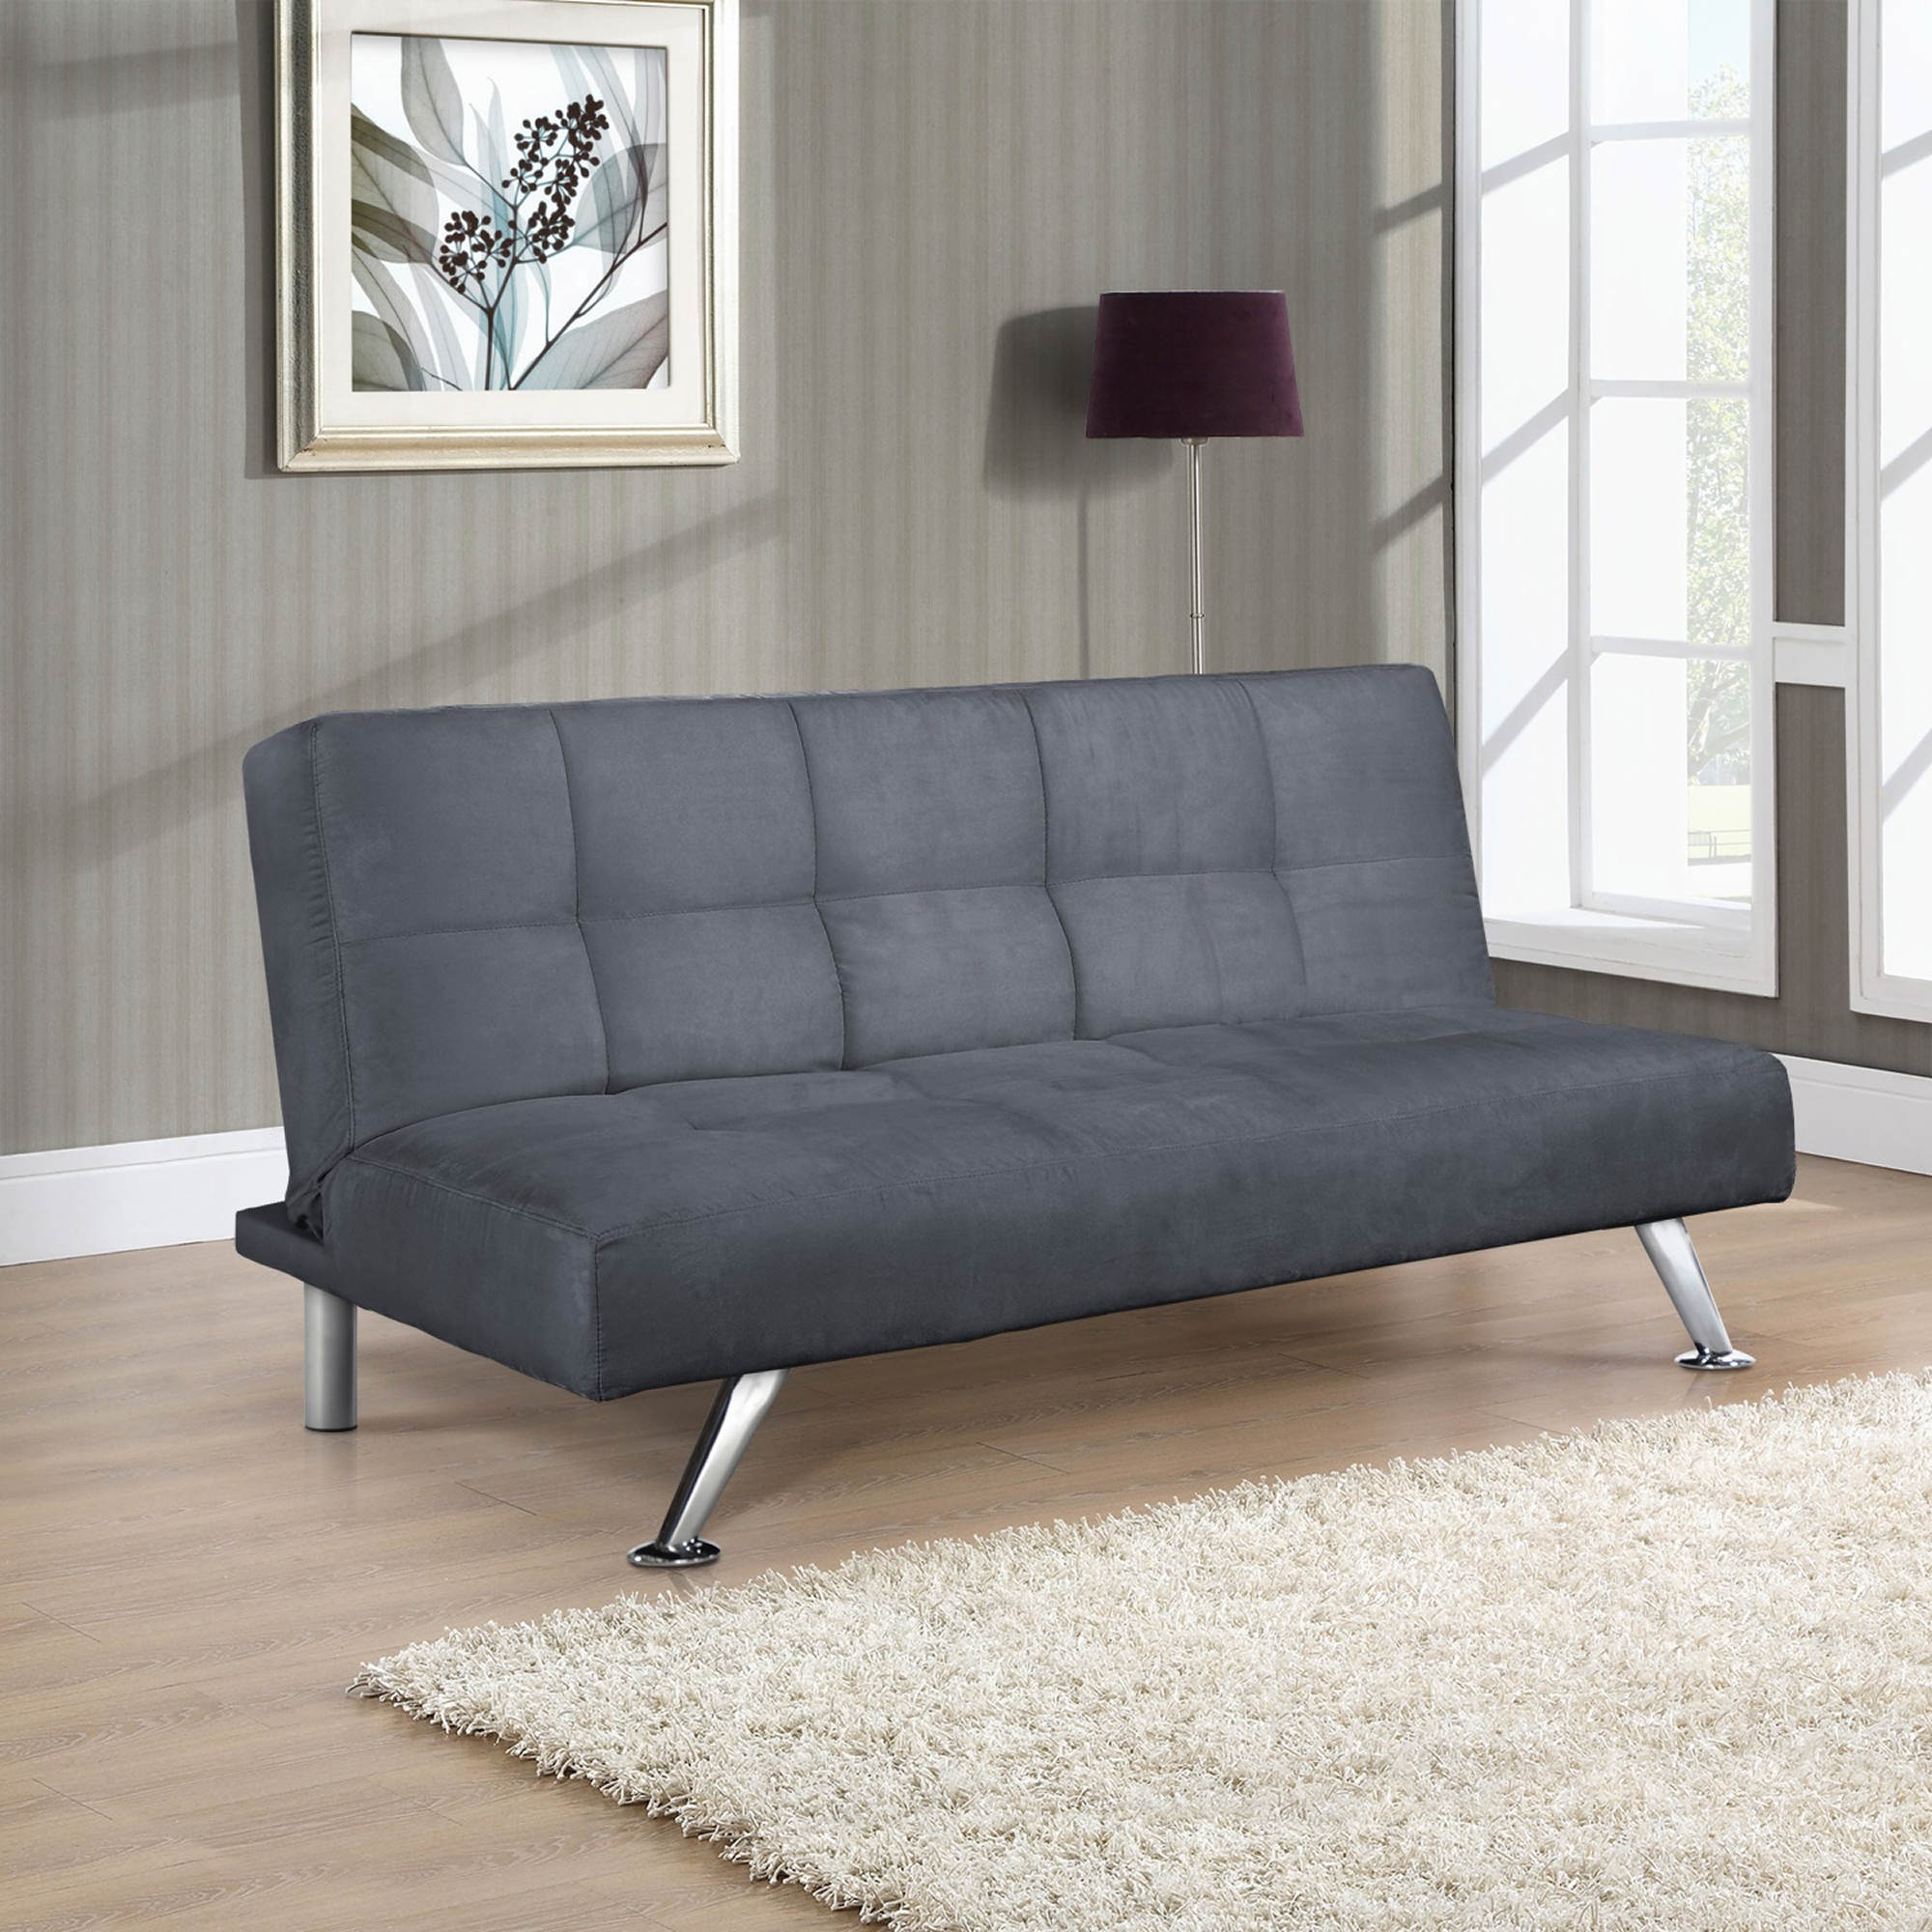 convertible modular sleeper jennifer full convertibles faux canada furniture bed leather sofa sectional of sofas small size curved